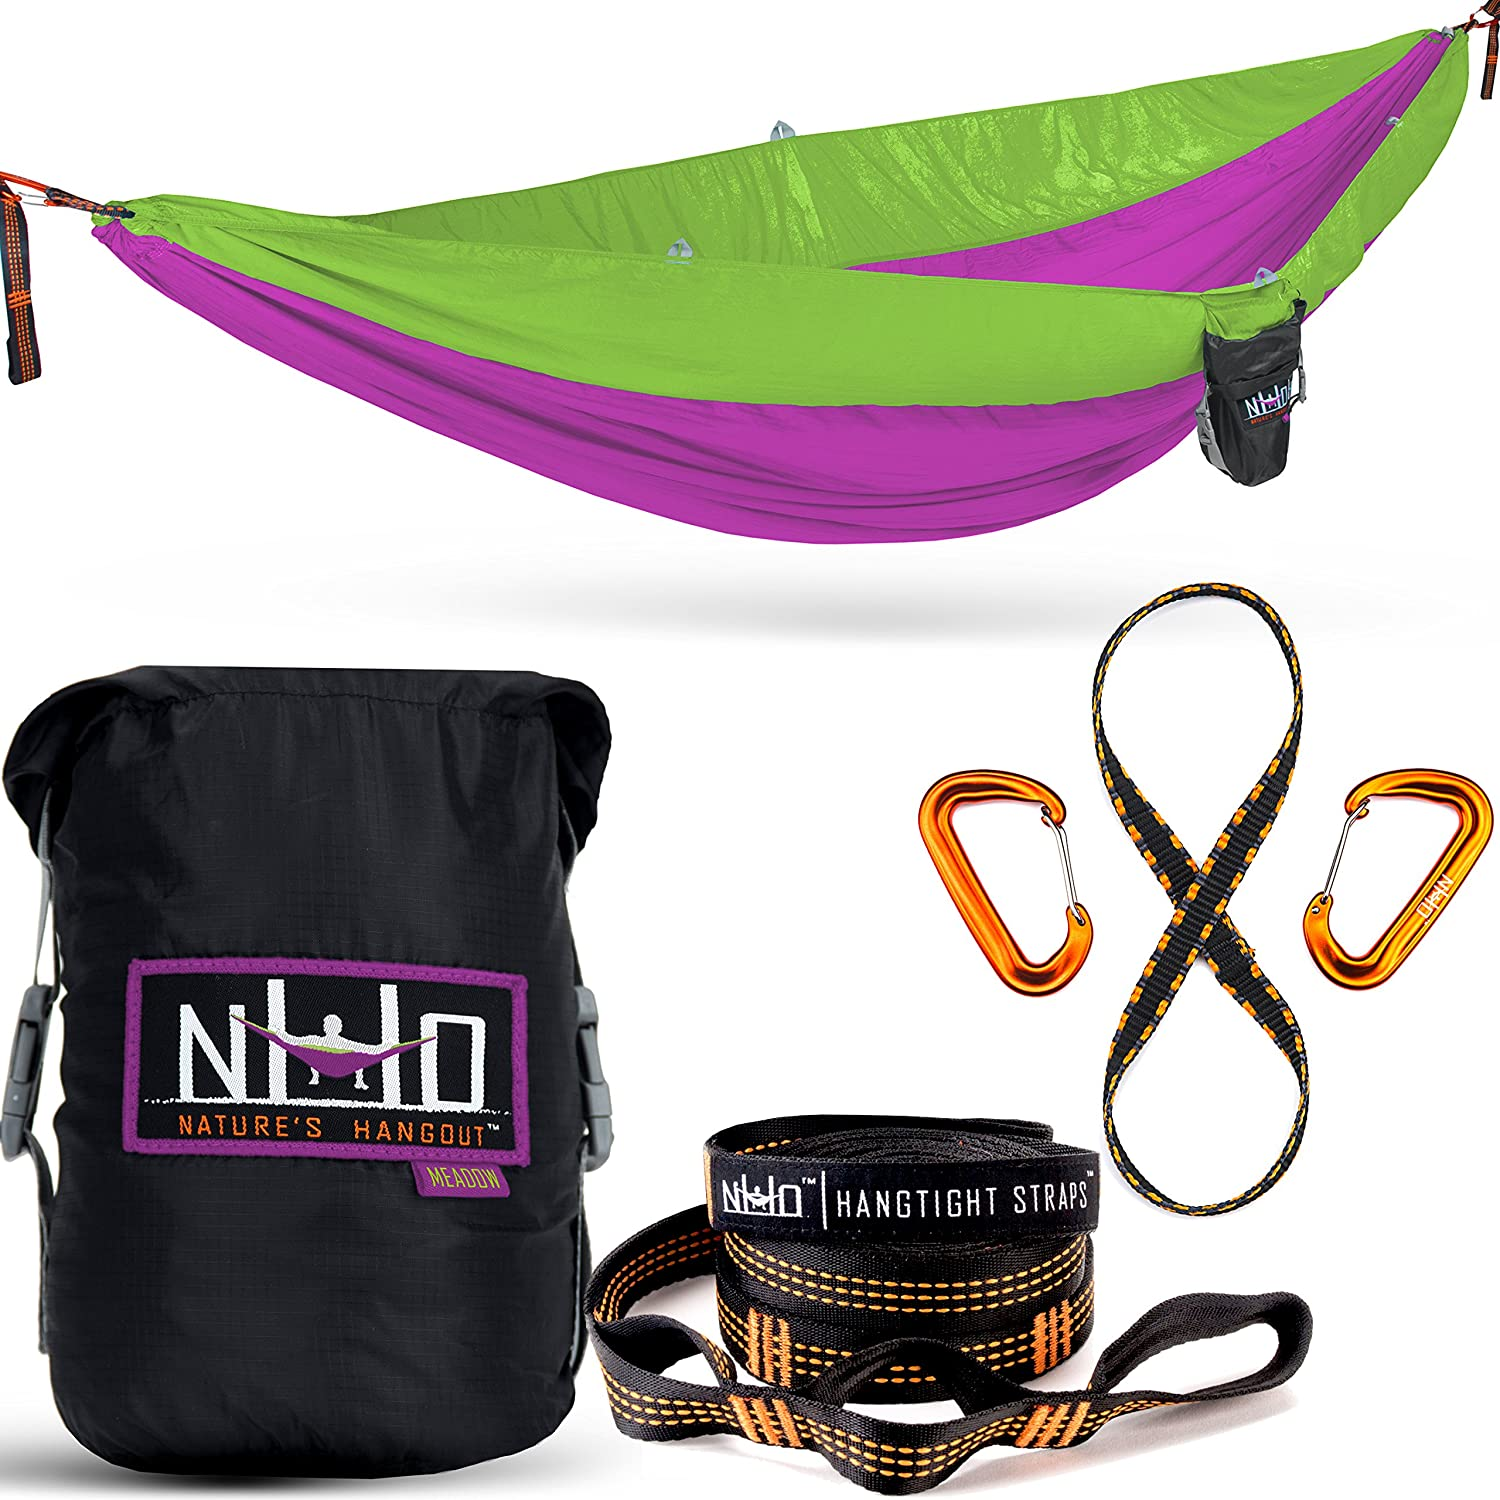 Beach Travel Backyard HULOSAN Hammock Camping Hammock Double /& Single with 2 Tree Straps and 2 Carabiners Backpacking Garden Lightweight Nylon Parachute Portable Outdoor Hammock for Camping